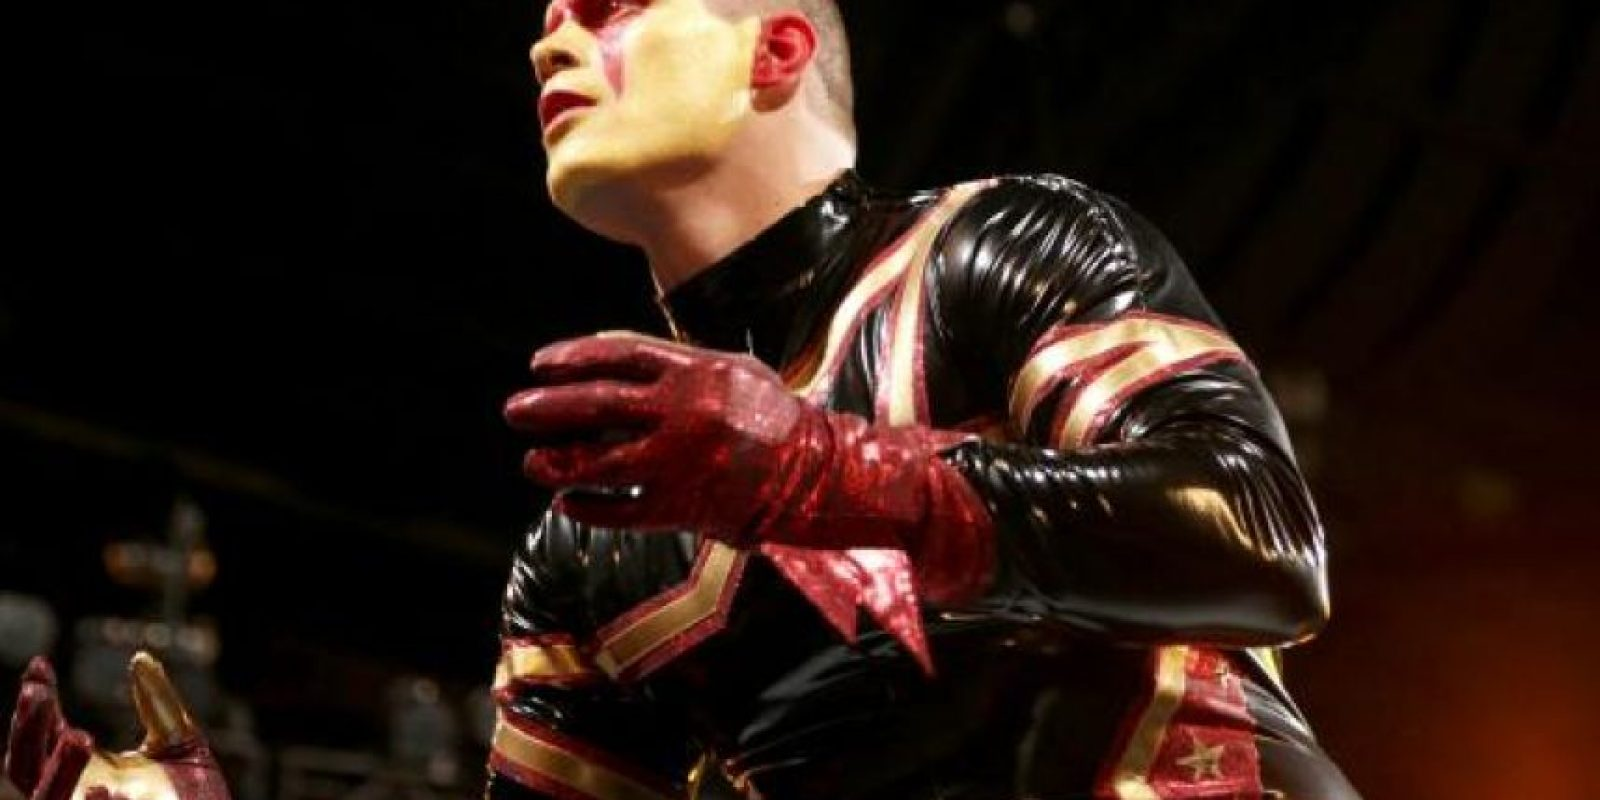 Es hermano de Goldust Foto: WWE